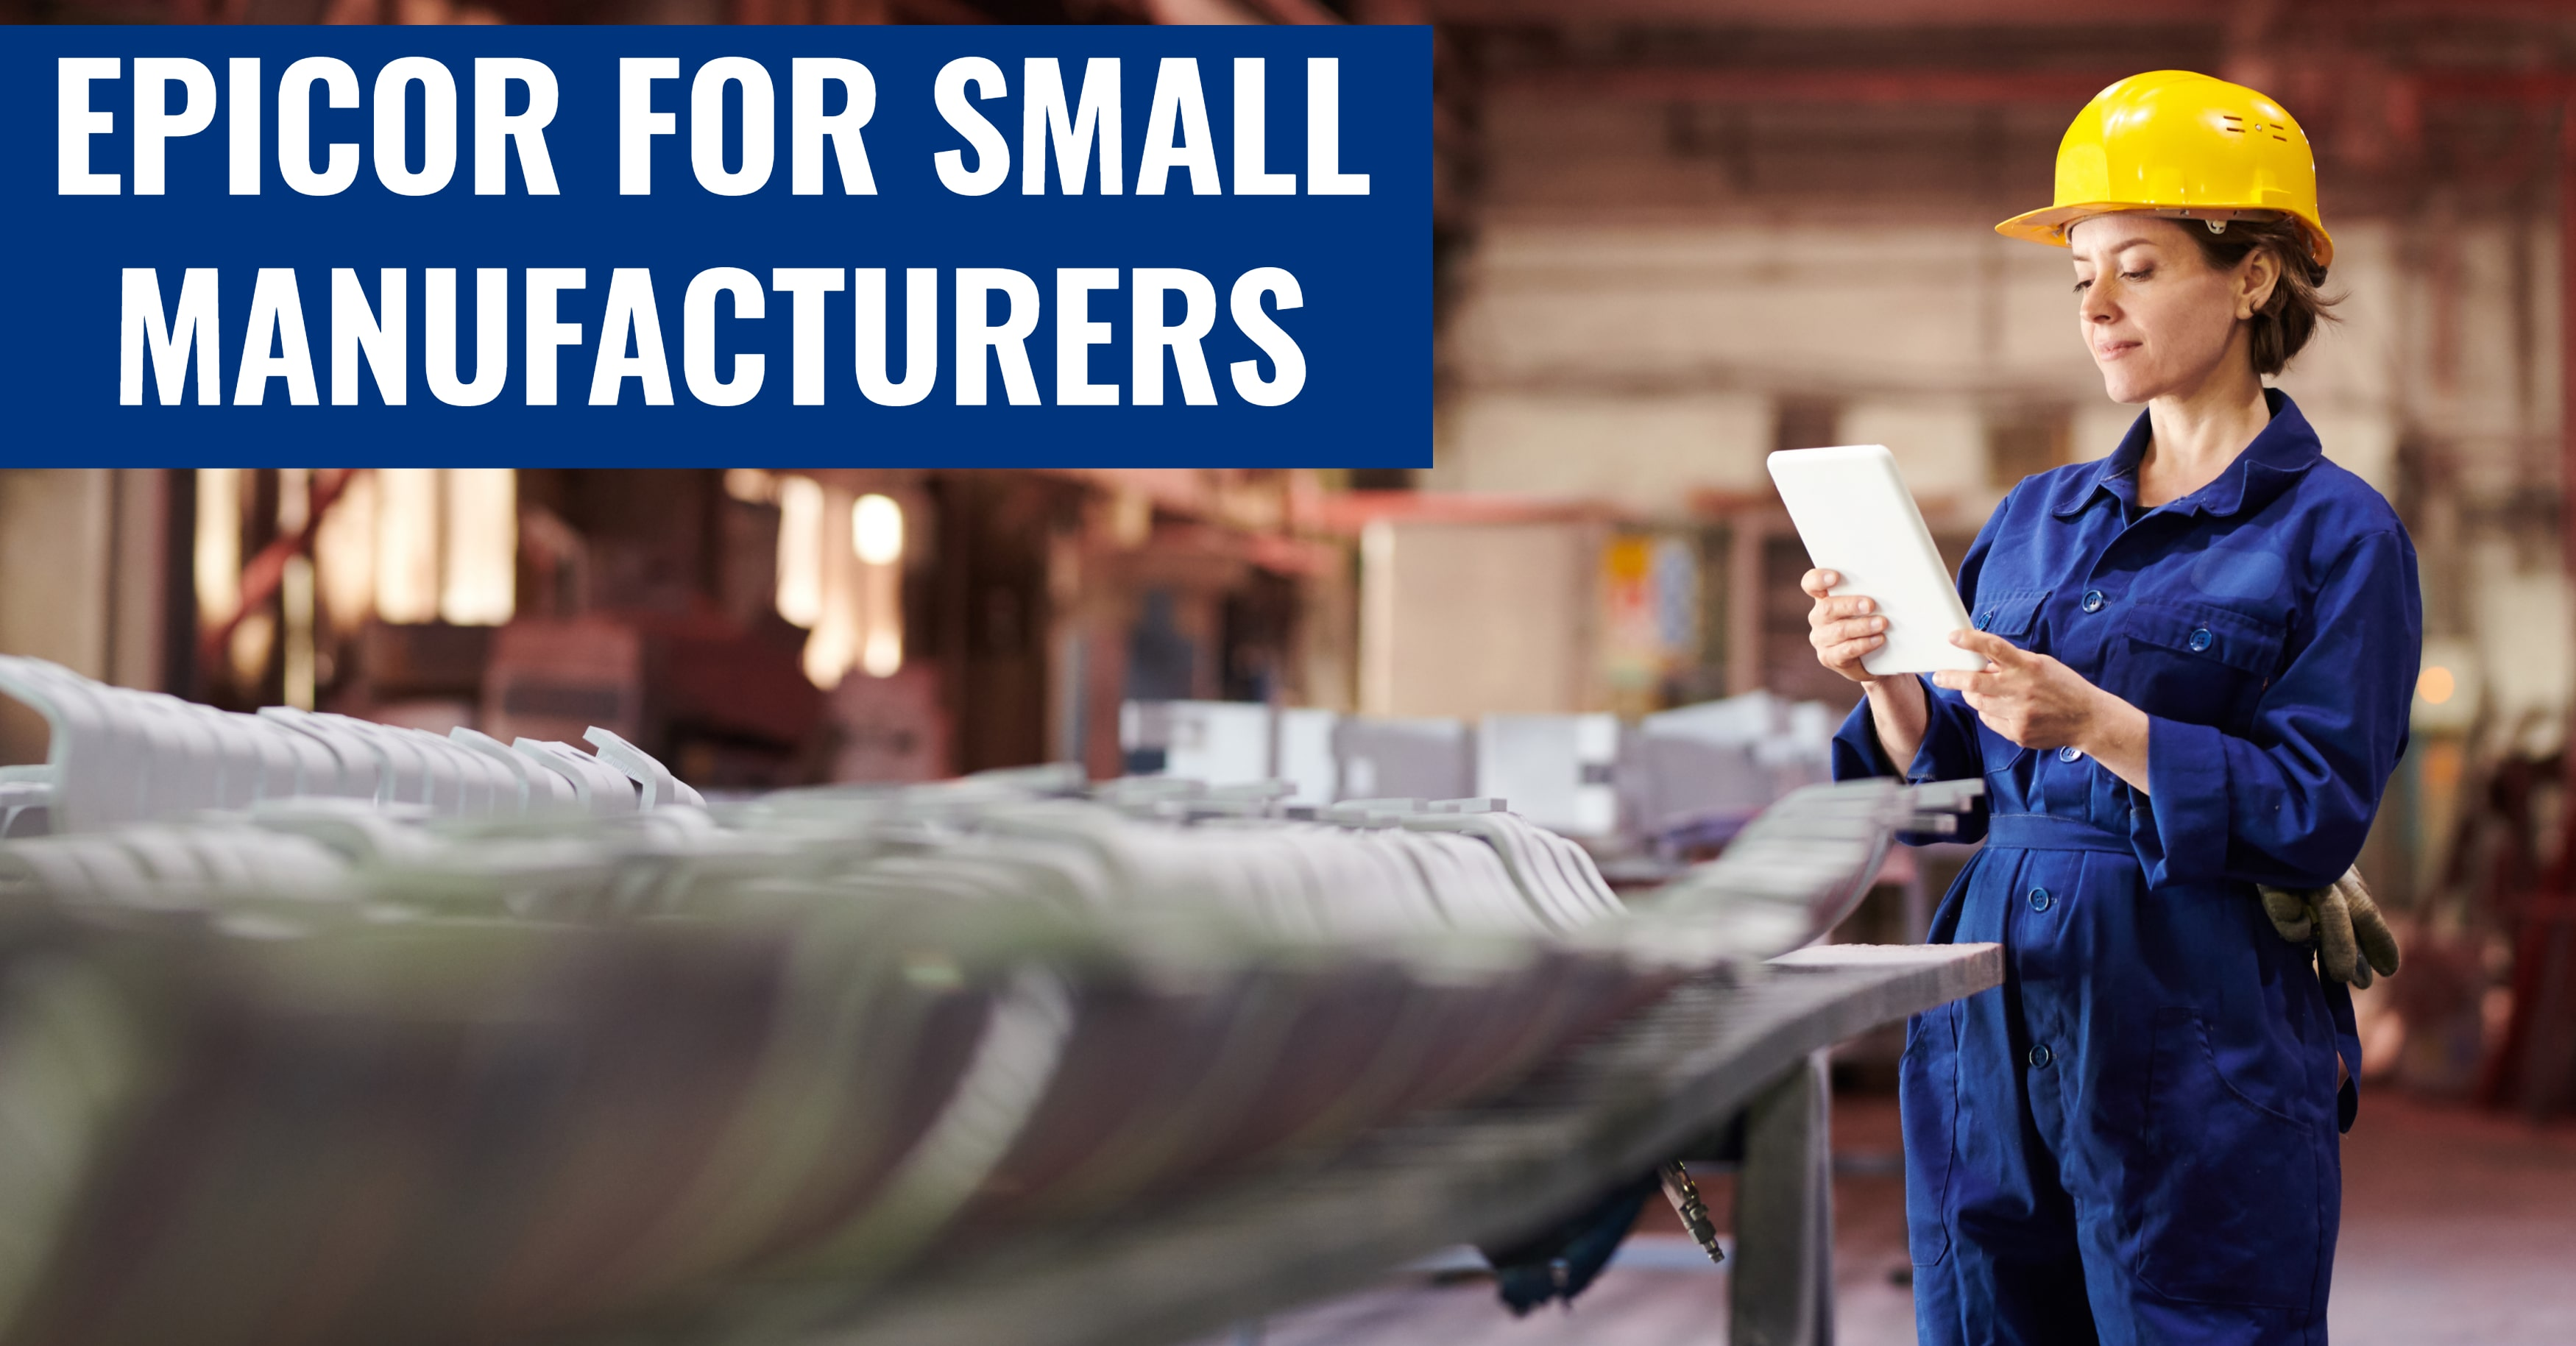 Epicor ERP: Premier Small Manufacturing Software